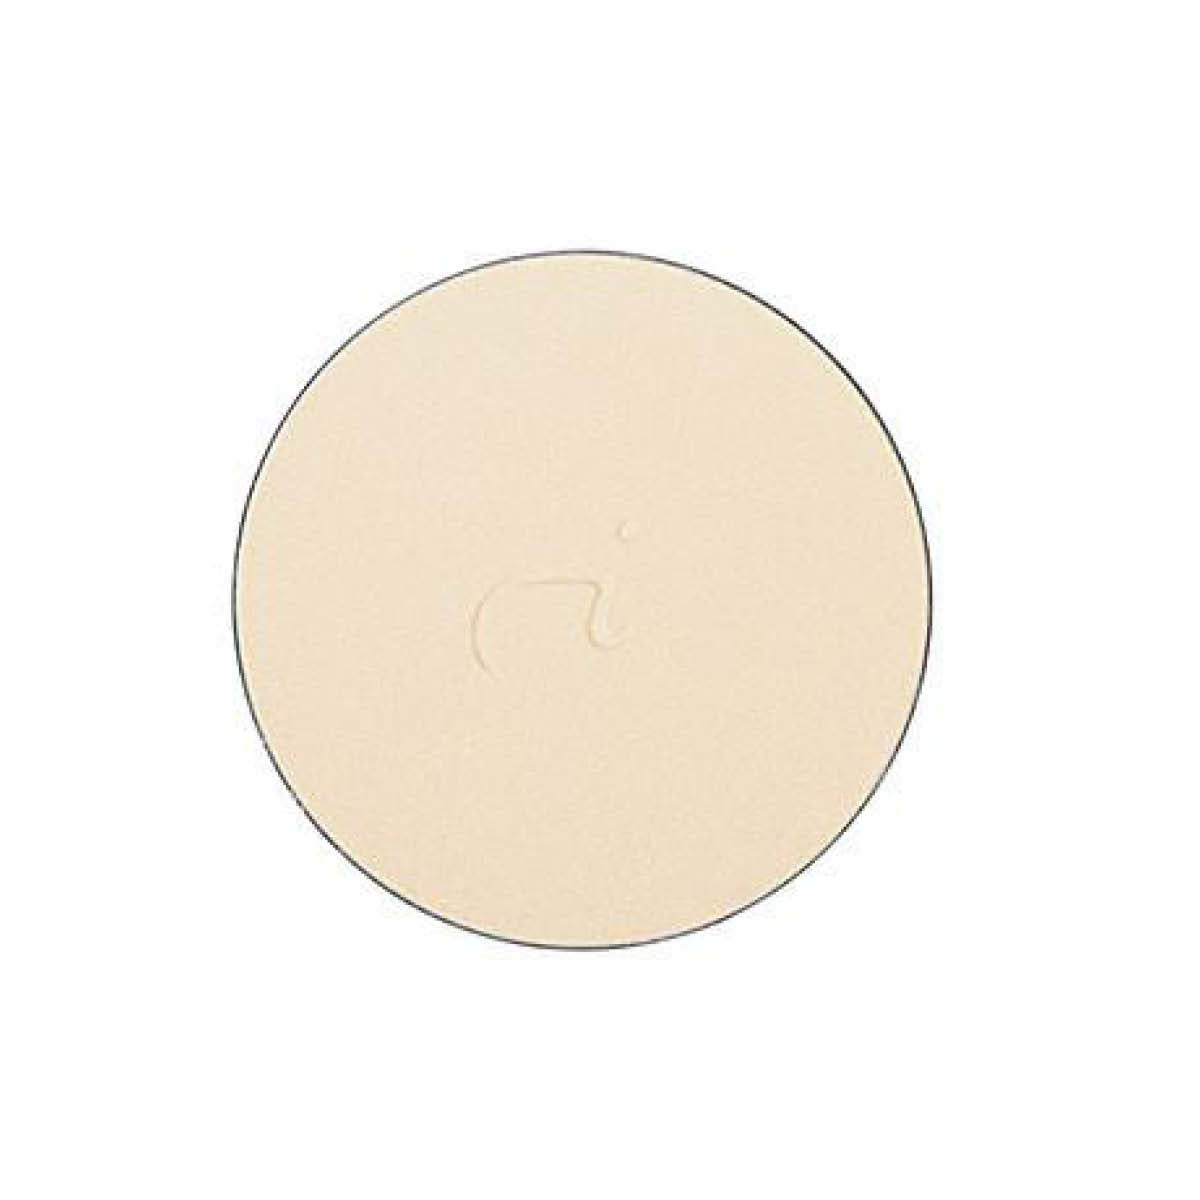 Jane Iredale Pure Pressed Powder Refill Light Beige